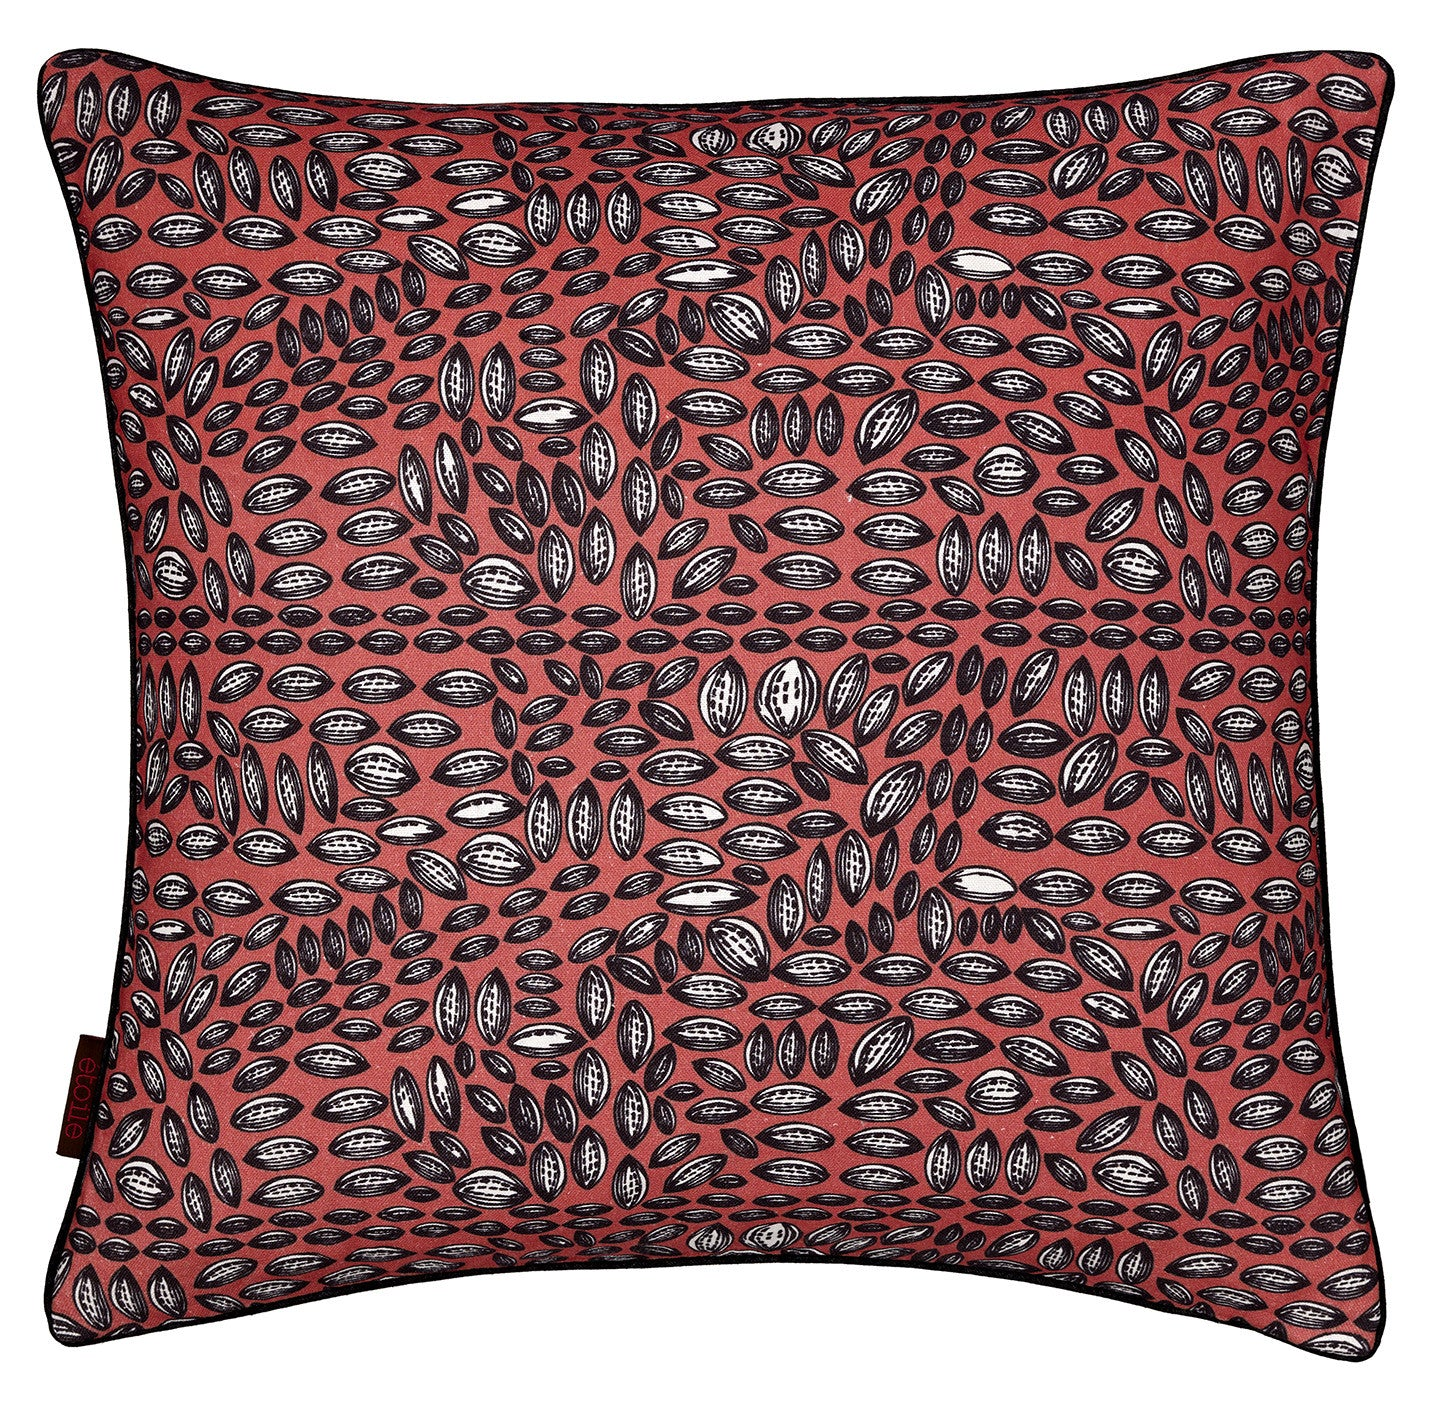 Graphic Cocoa Seed Pattern Linen Cotton Cushion in Coral Pink